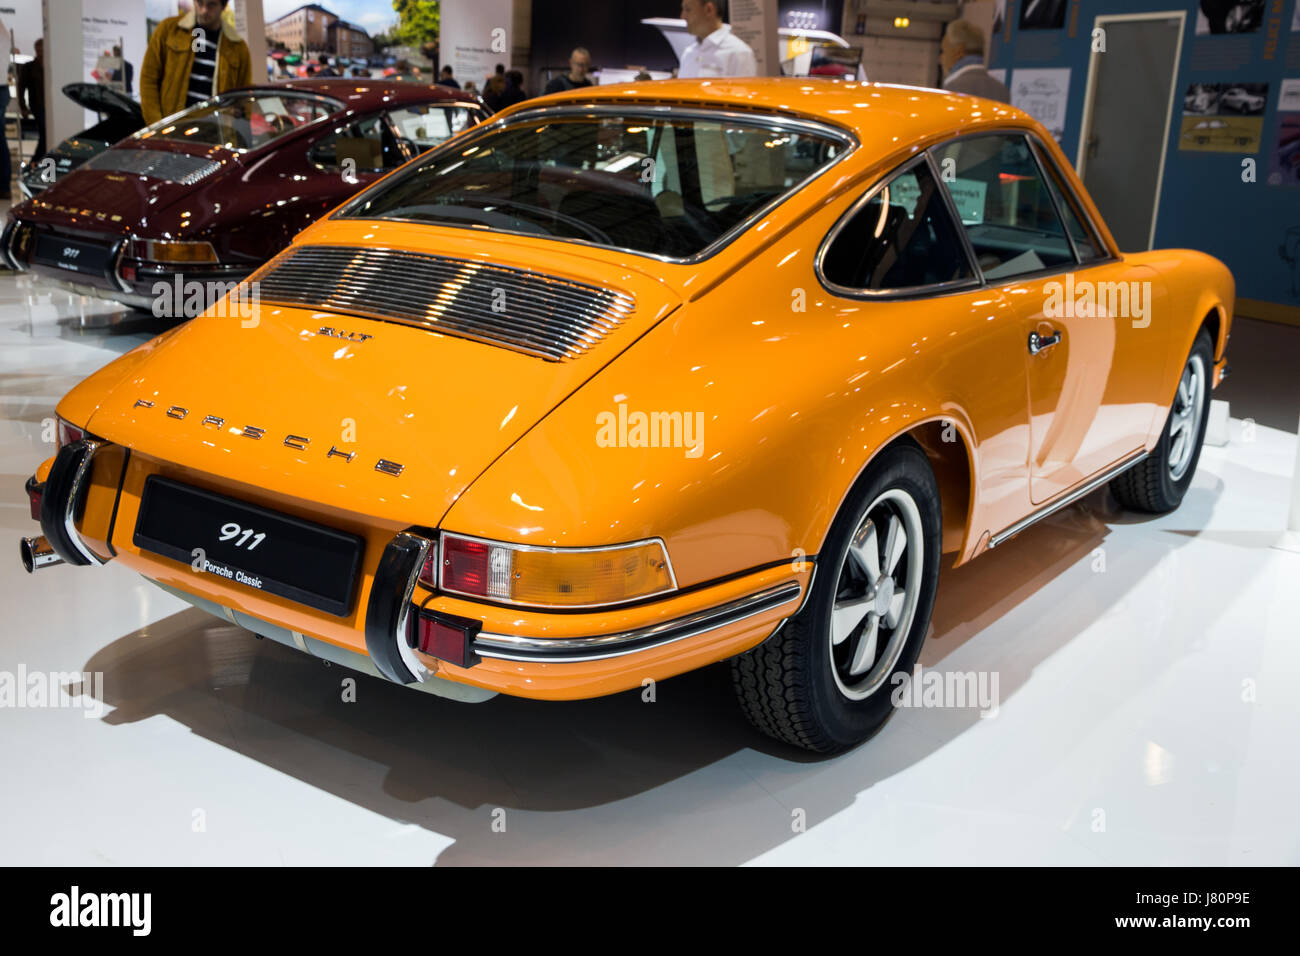 essen germany apr 6 2017 vintage 1970 porsche 911 2 2 coupe stock photo 142617706 alamy. Black Bedroom Furniture Sets. Home Design Ideas